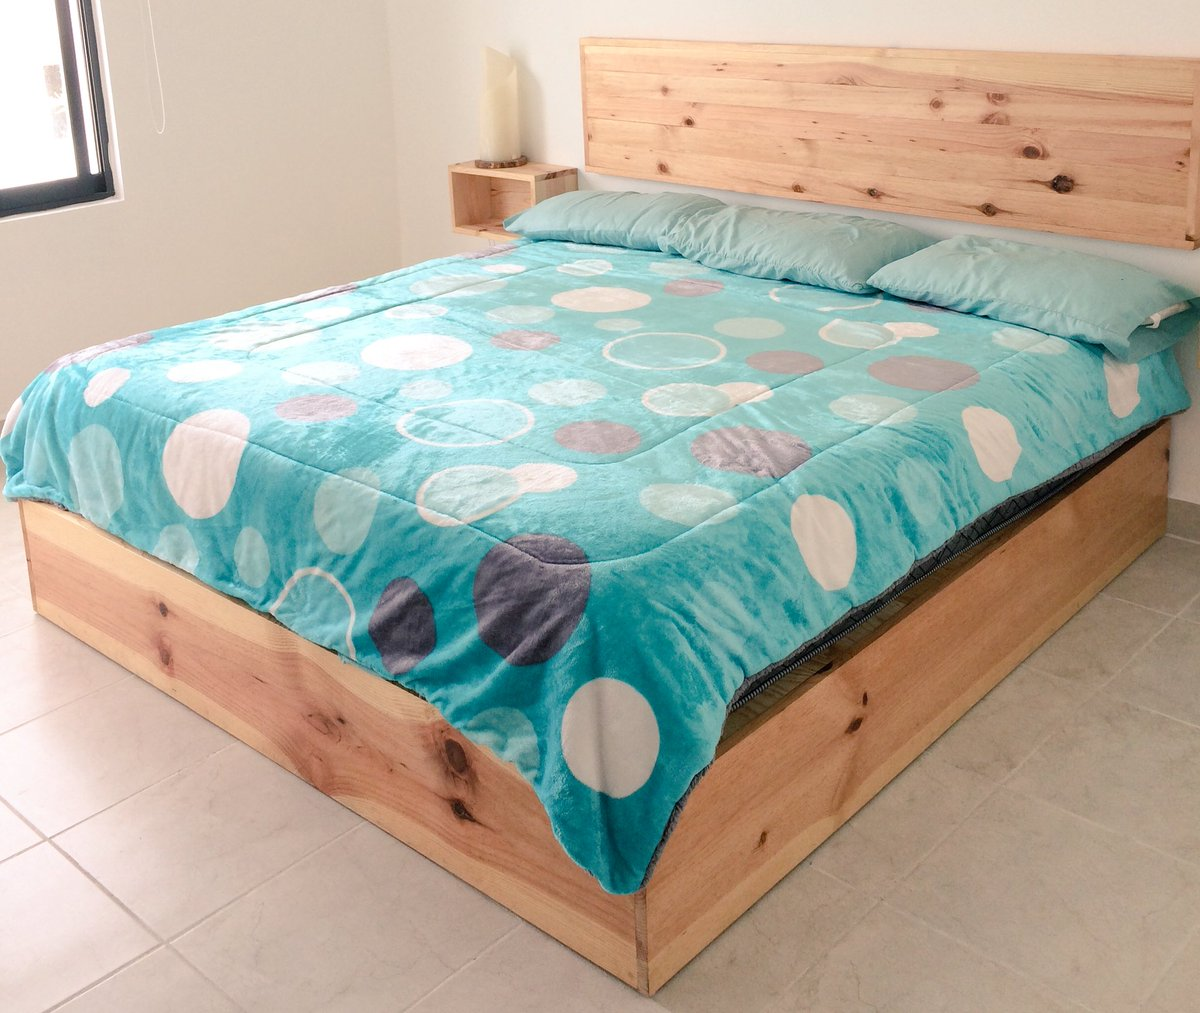 Playa And Palets Playaandpalets Twitter # Muebles Con Uacales